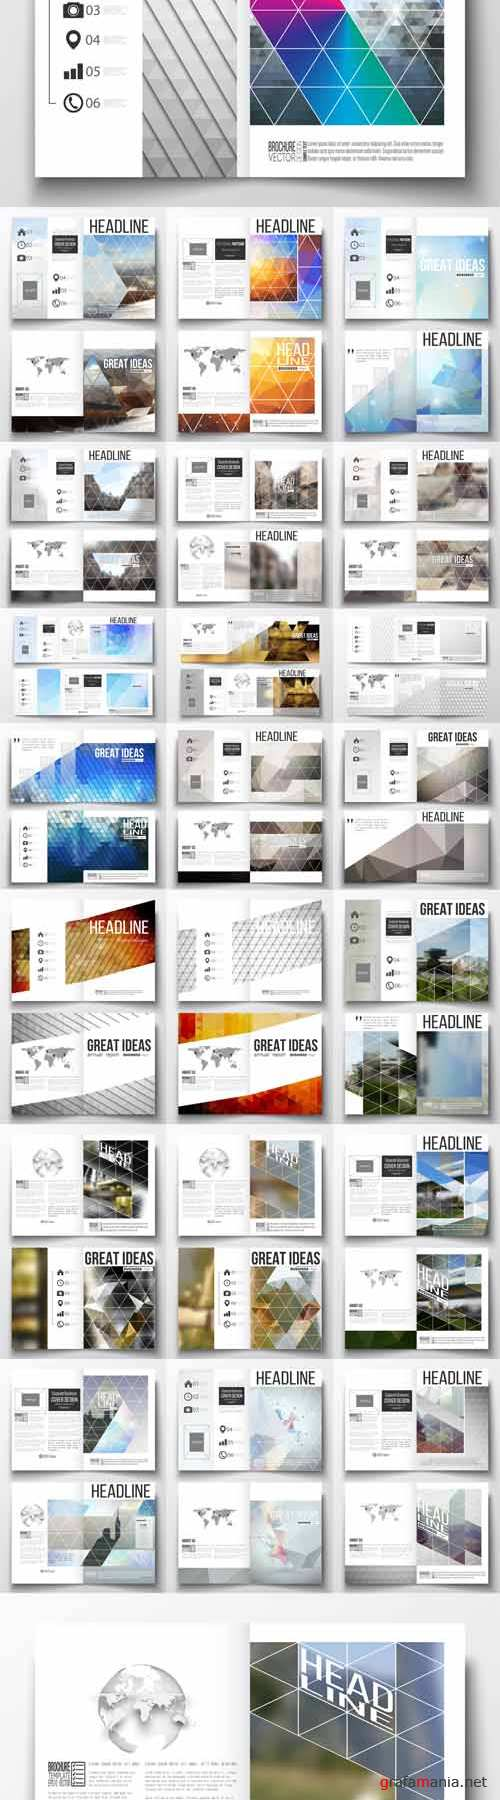 Vector 24 Business Templates for Brochure Magazine Vol 2